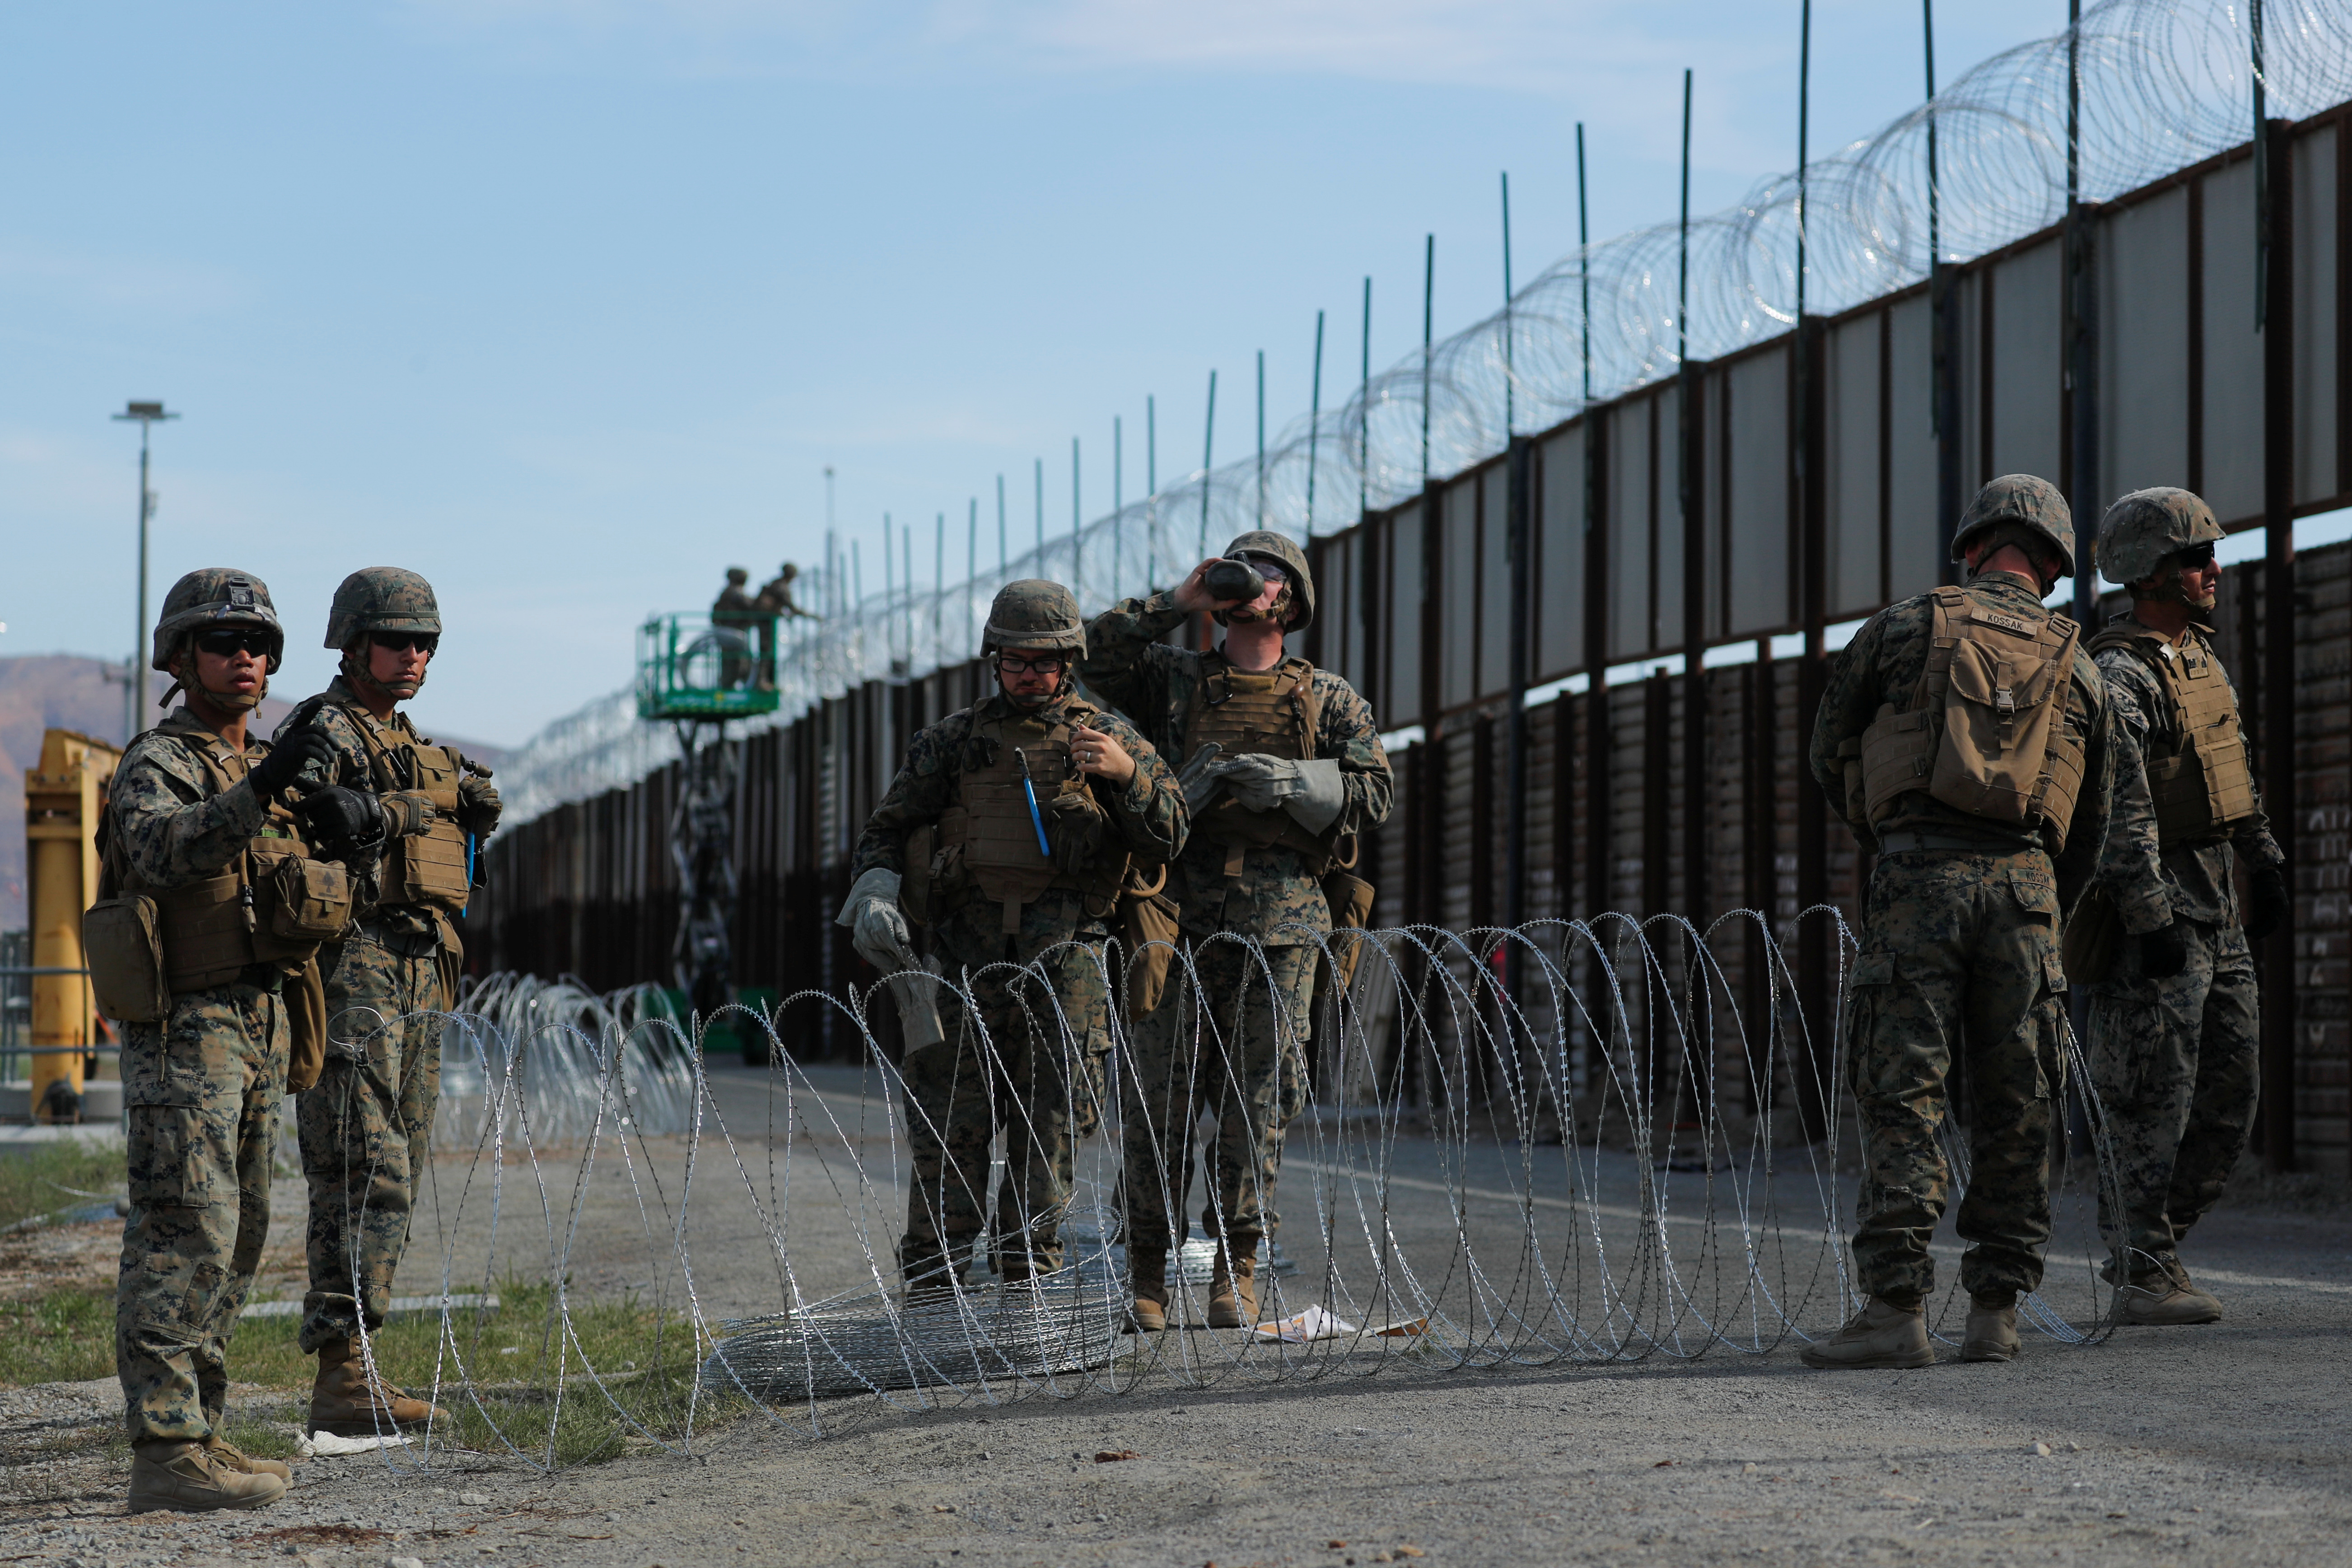 FILE PHOTO: U.S. Marines deploy concertina wire at the U.S. Mexico border in preparation for the arrival of a caravan of migrants at the San Ysidro border crossing in San Diego, California, U.S. November 15, 2018. REUTERS/Mike Blake